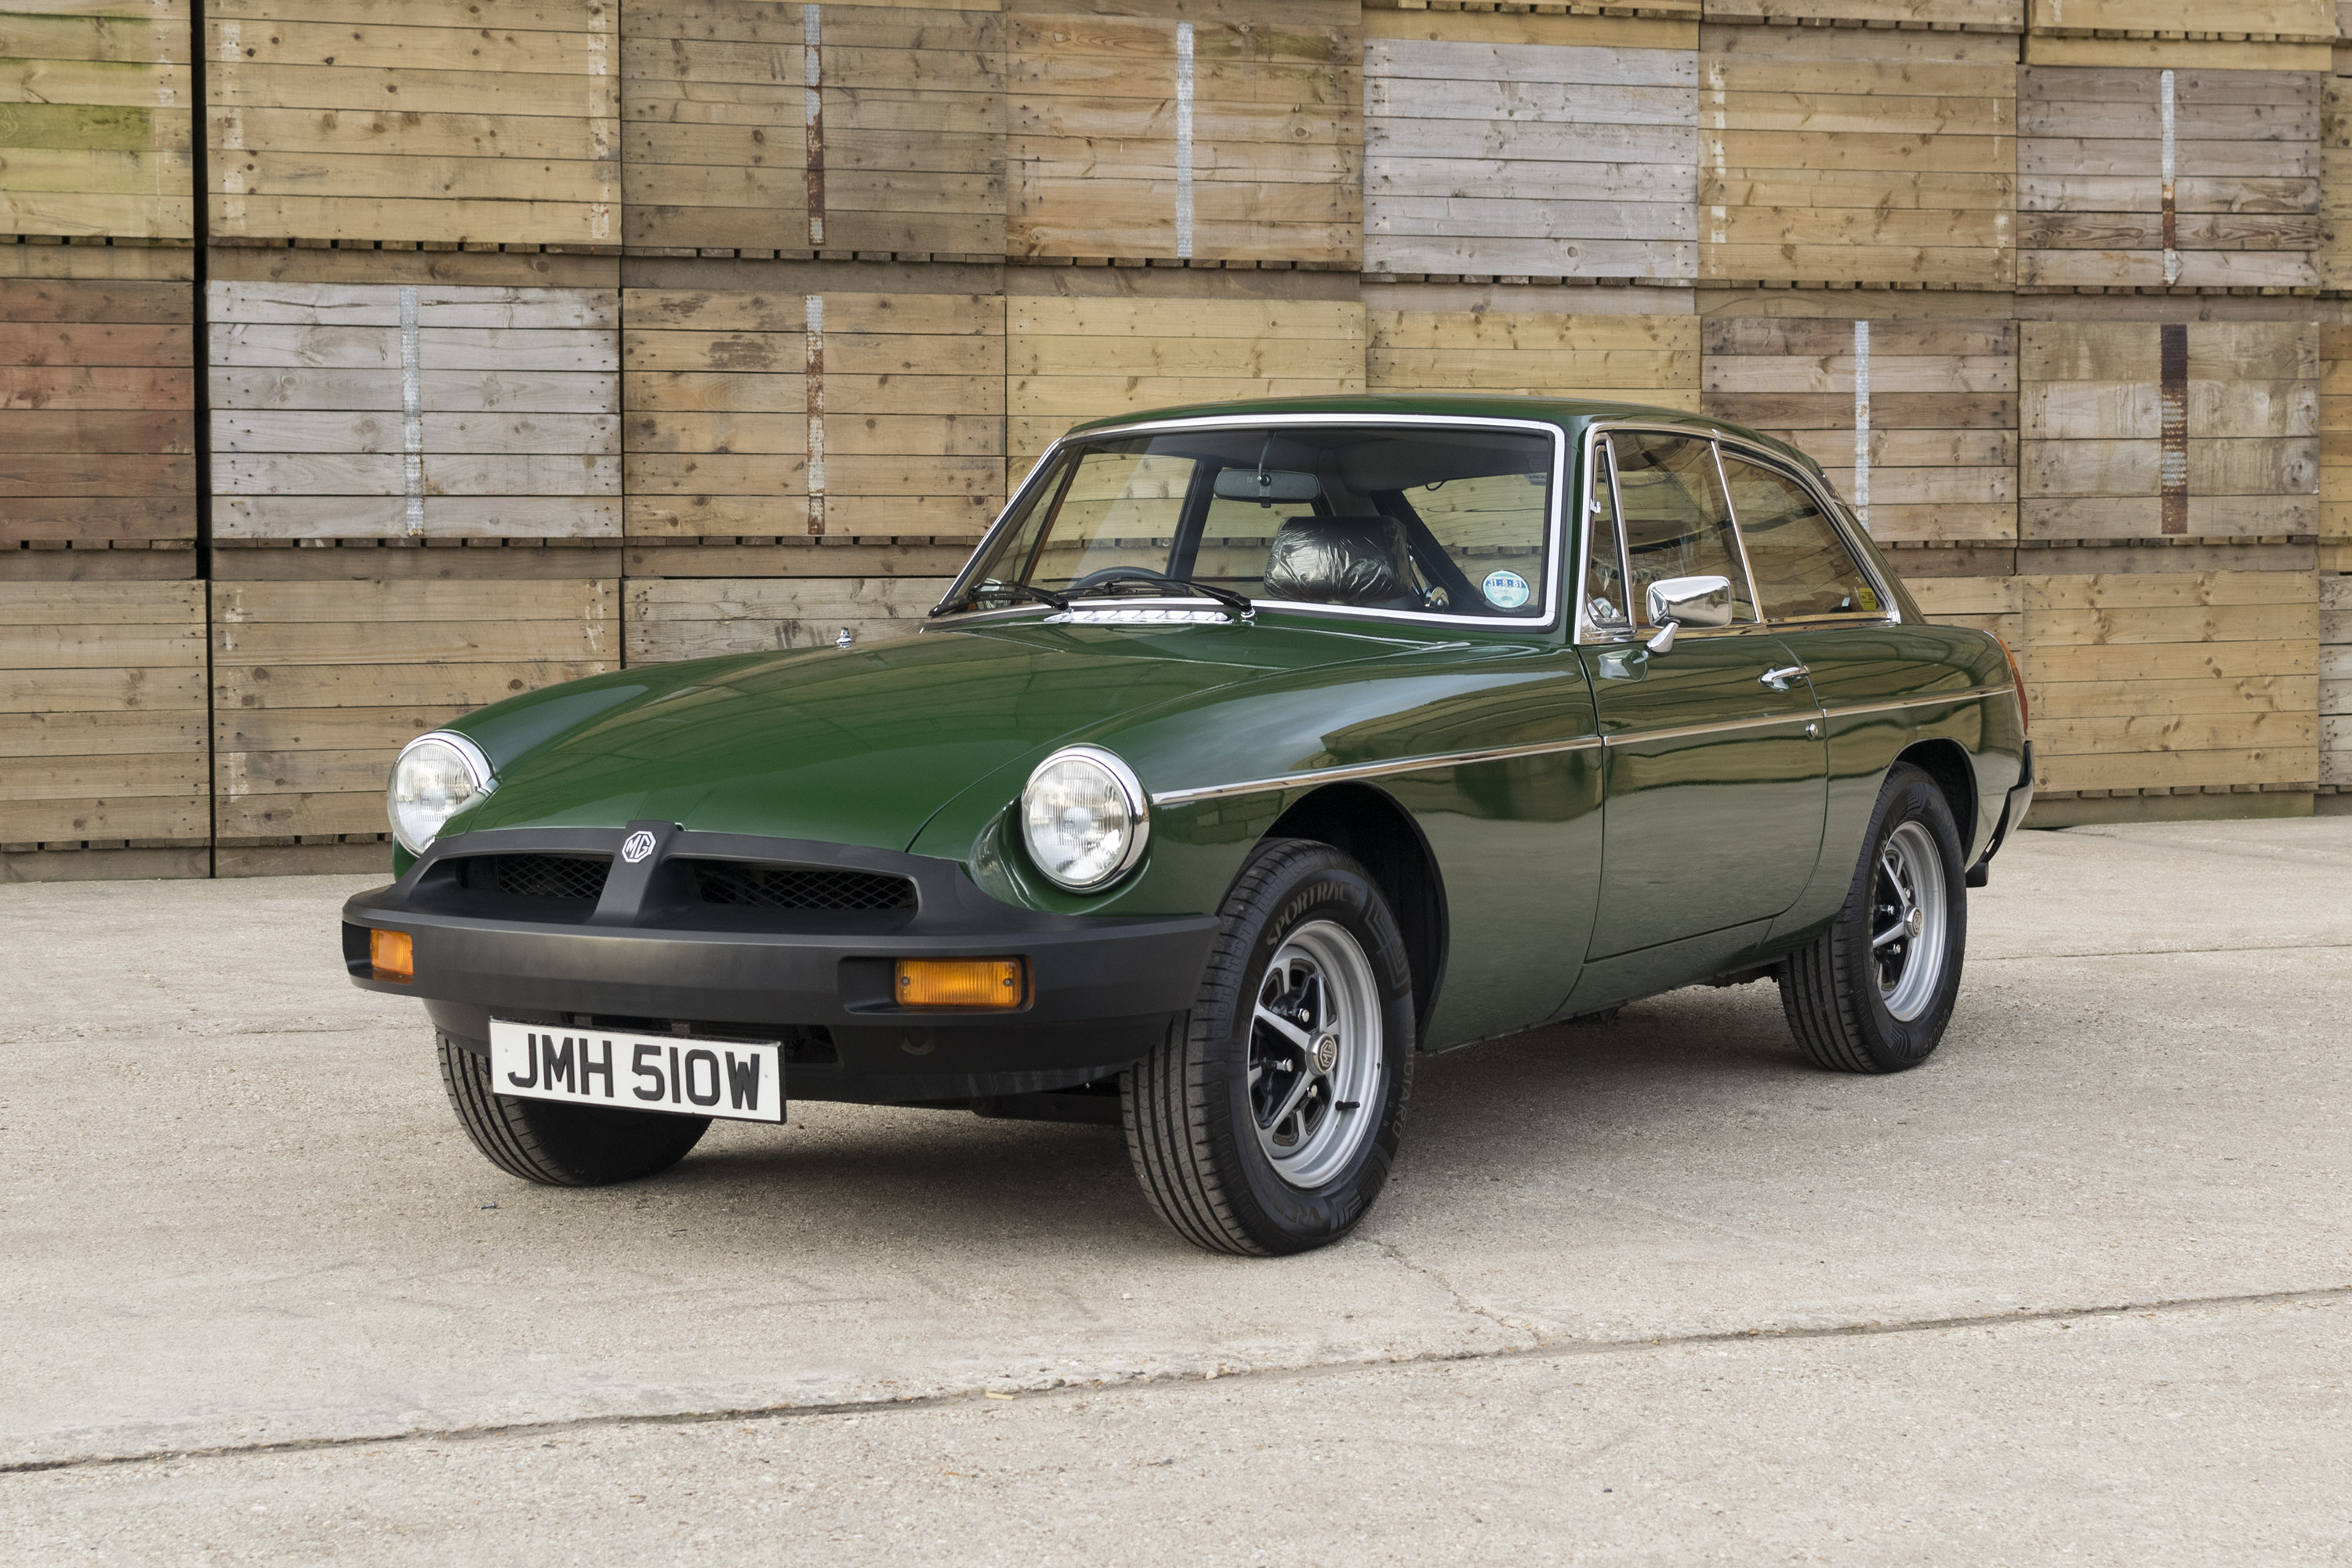 1980 MGB GT - 1,669 MILES FROM NEW